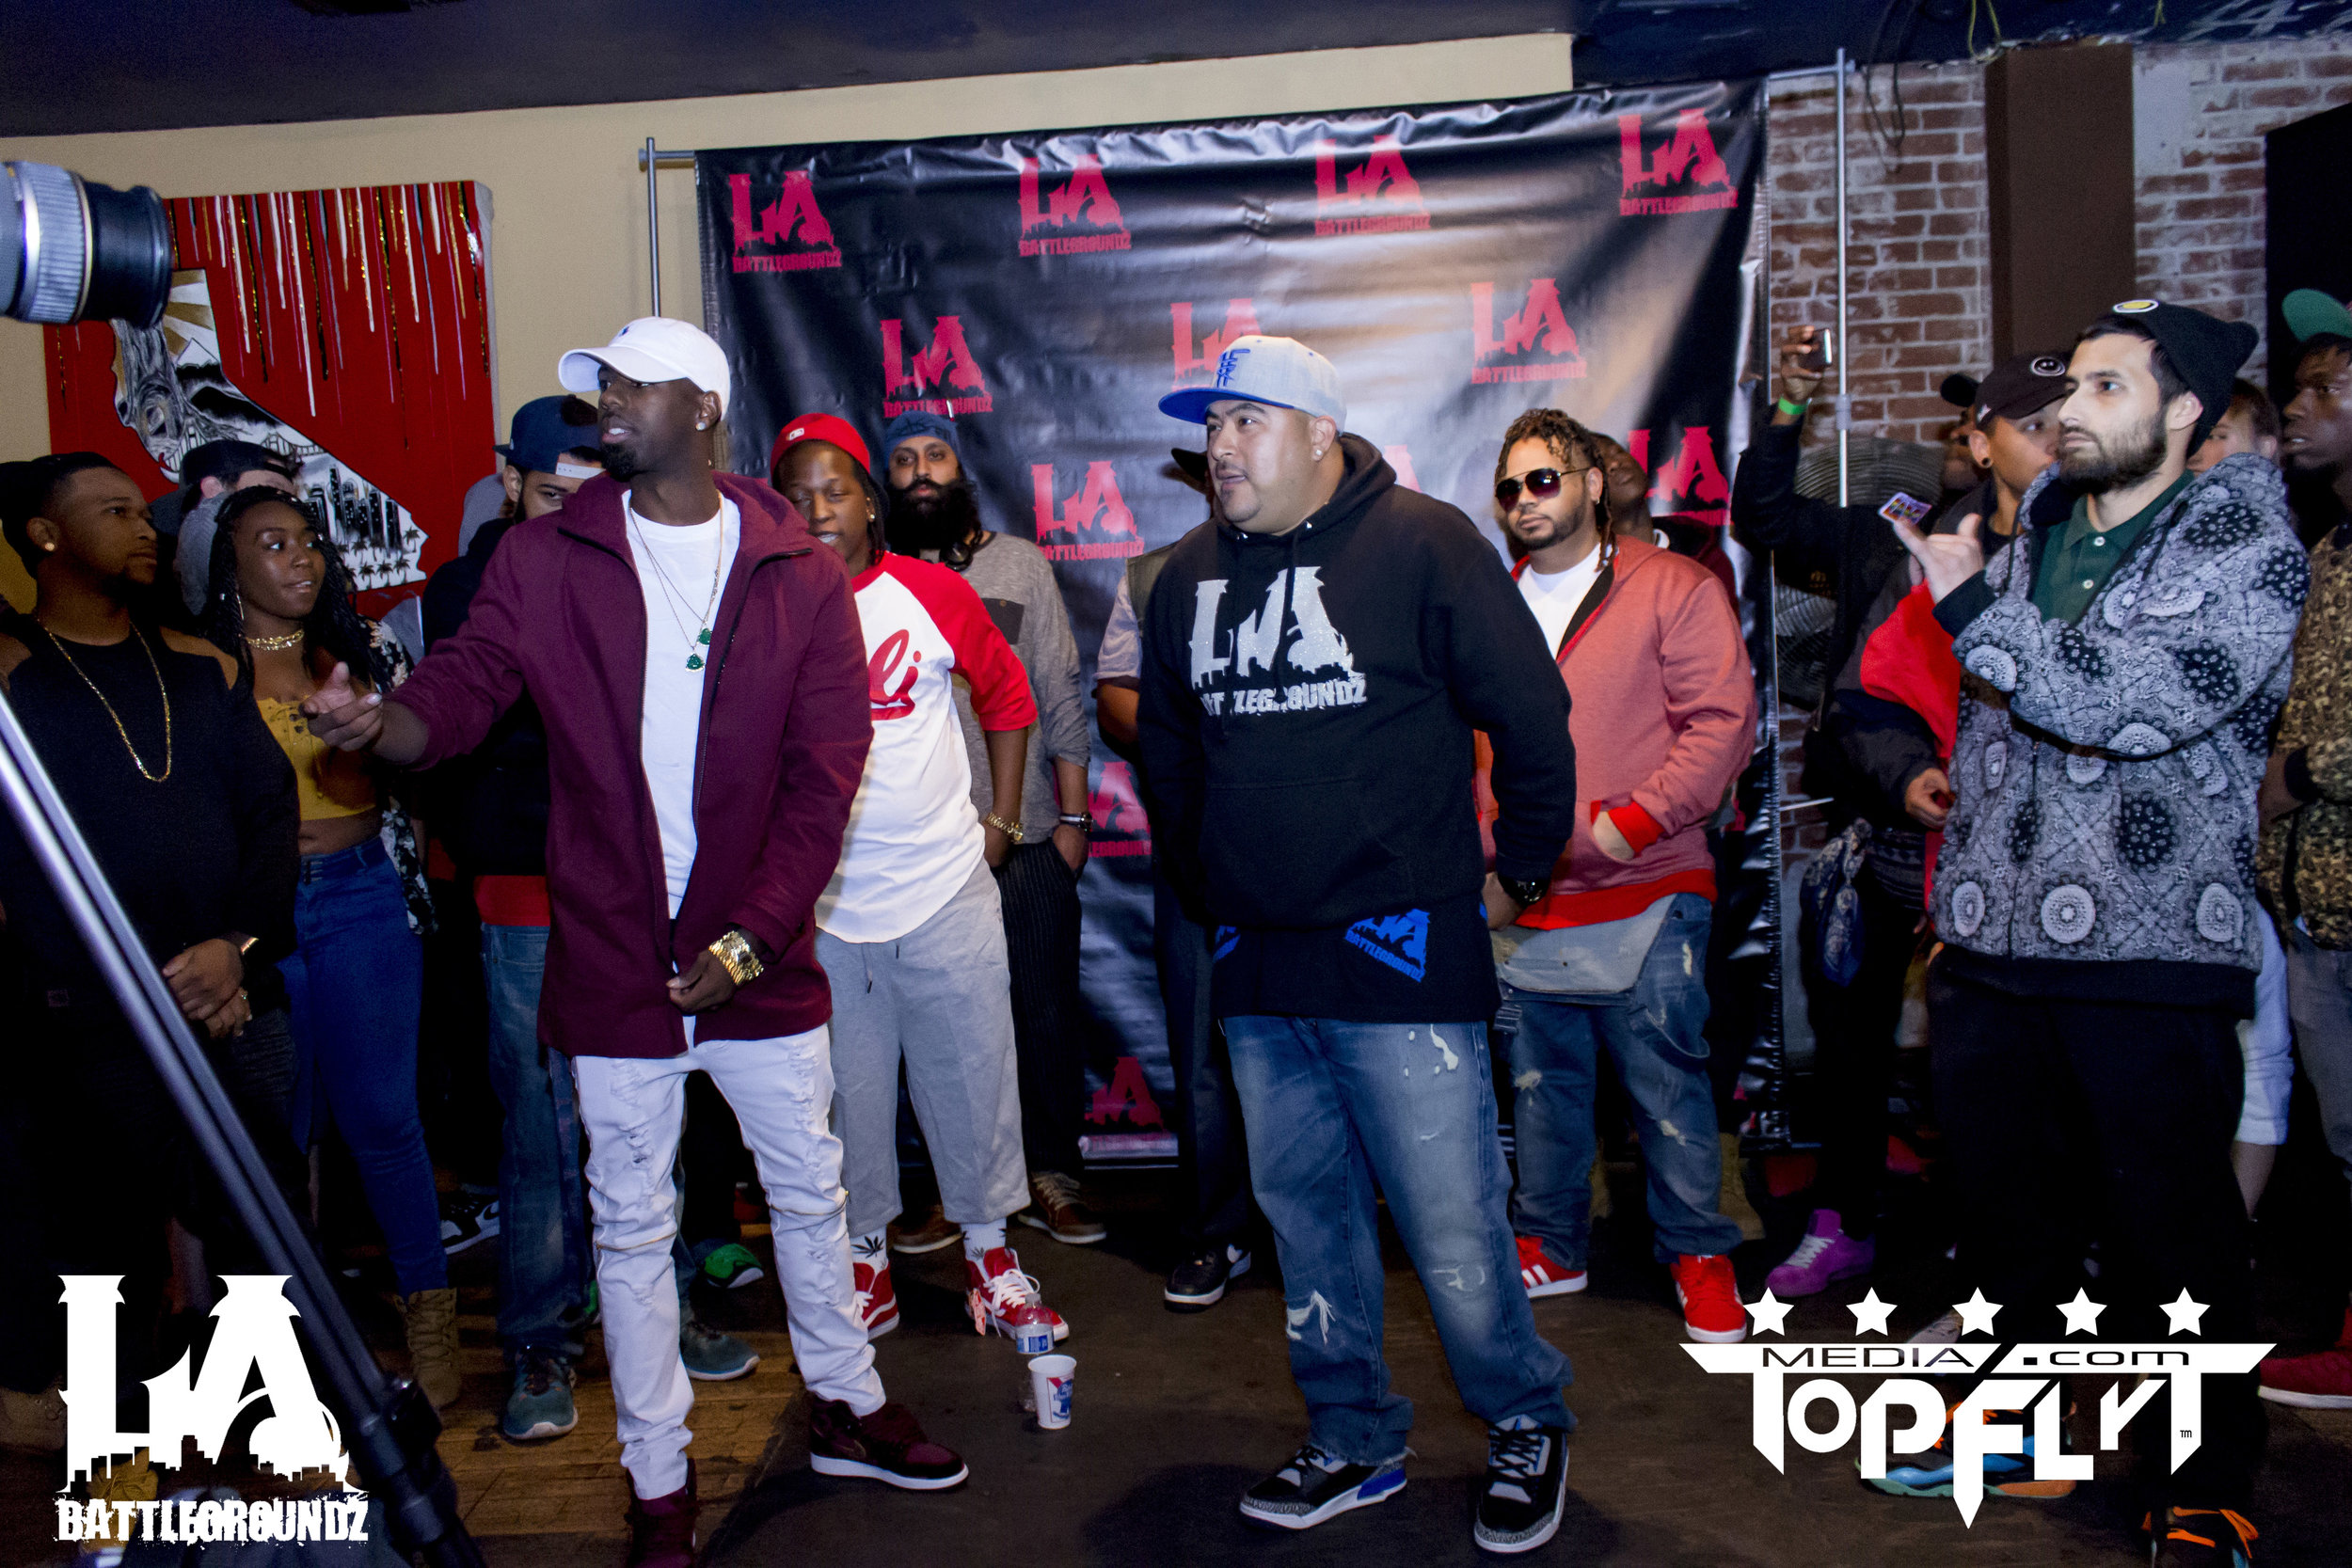 LA Battlegroundz - Decembarfest - The Christening_2.jpg